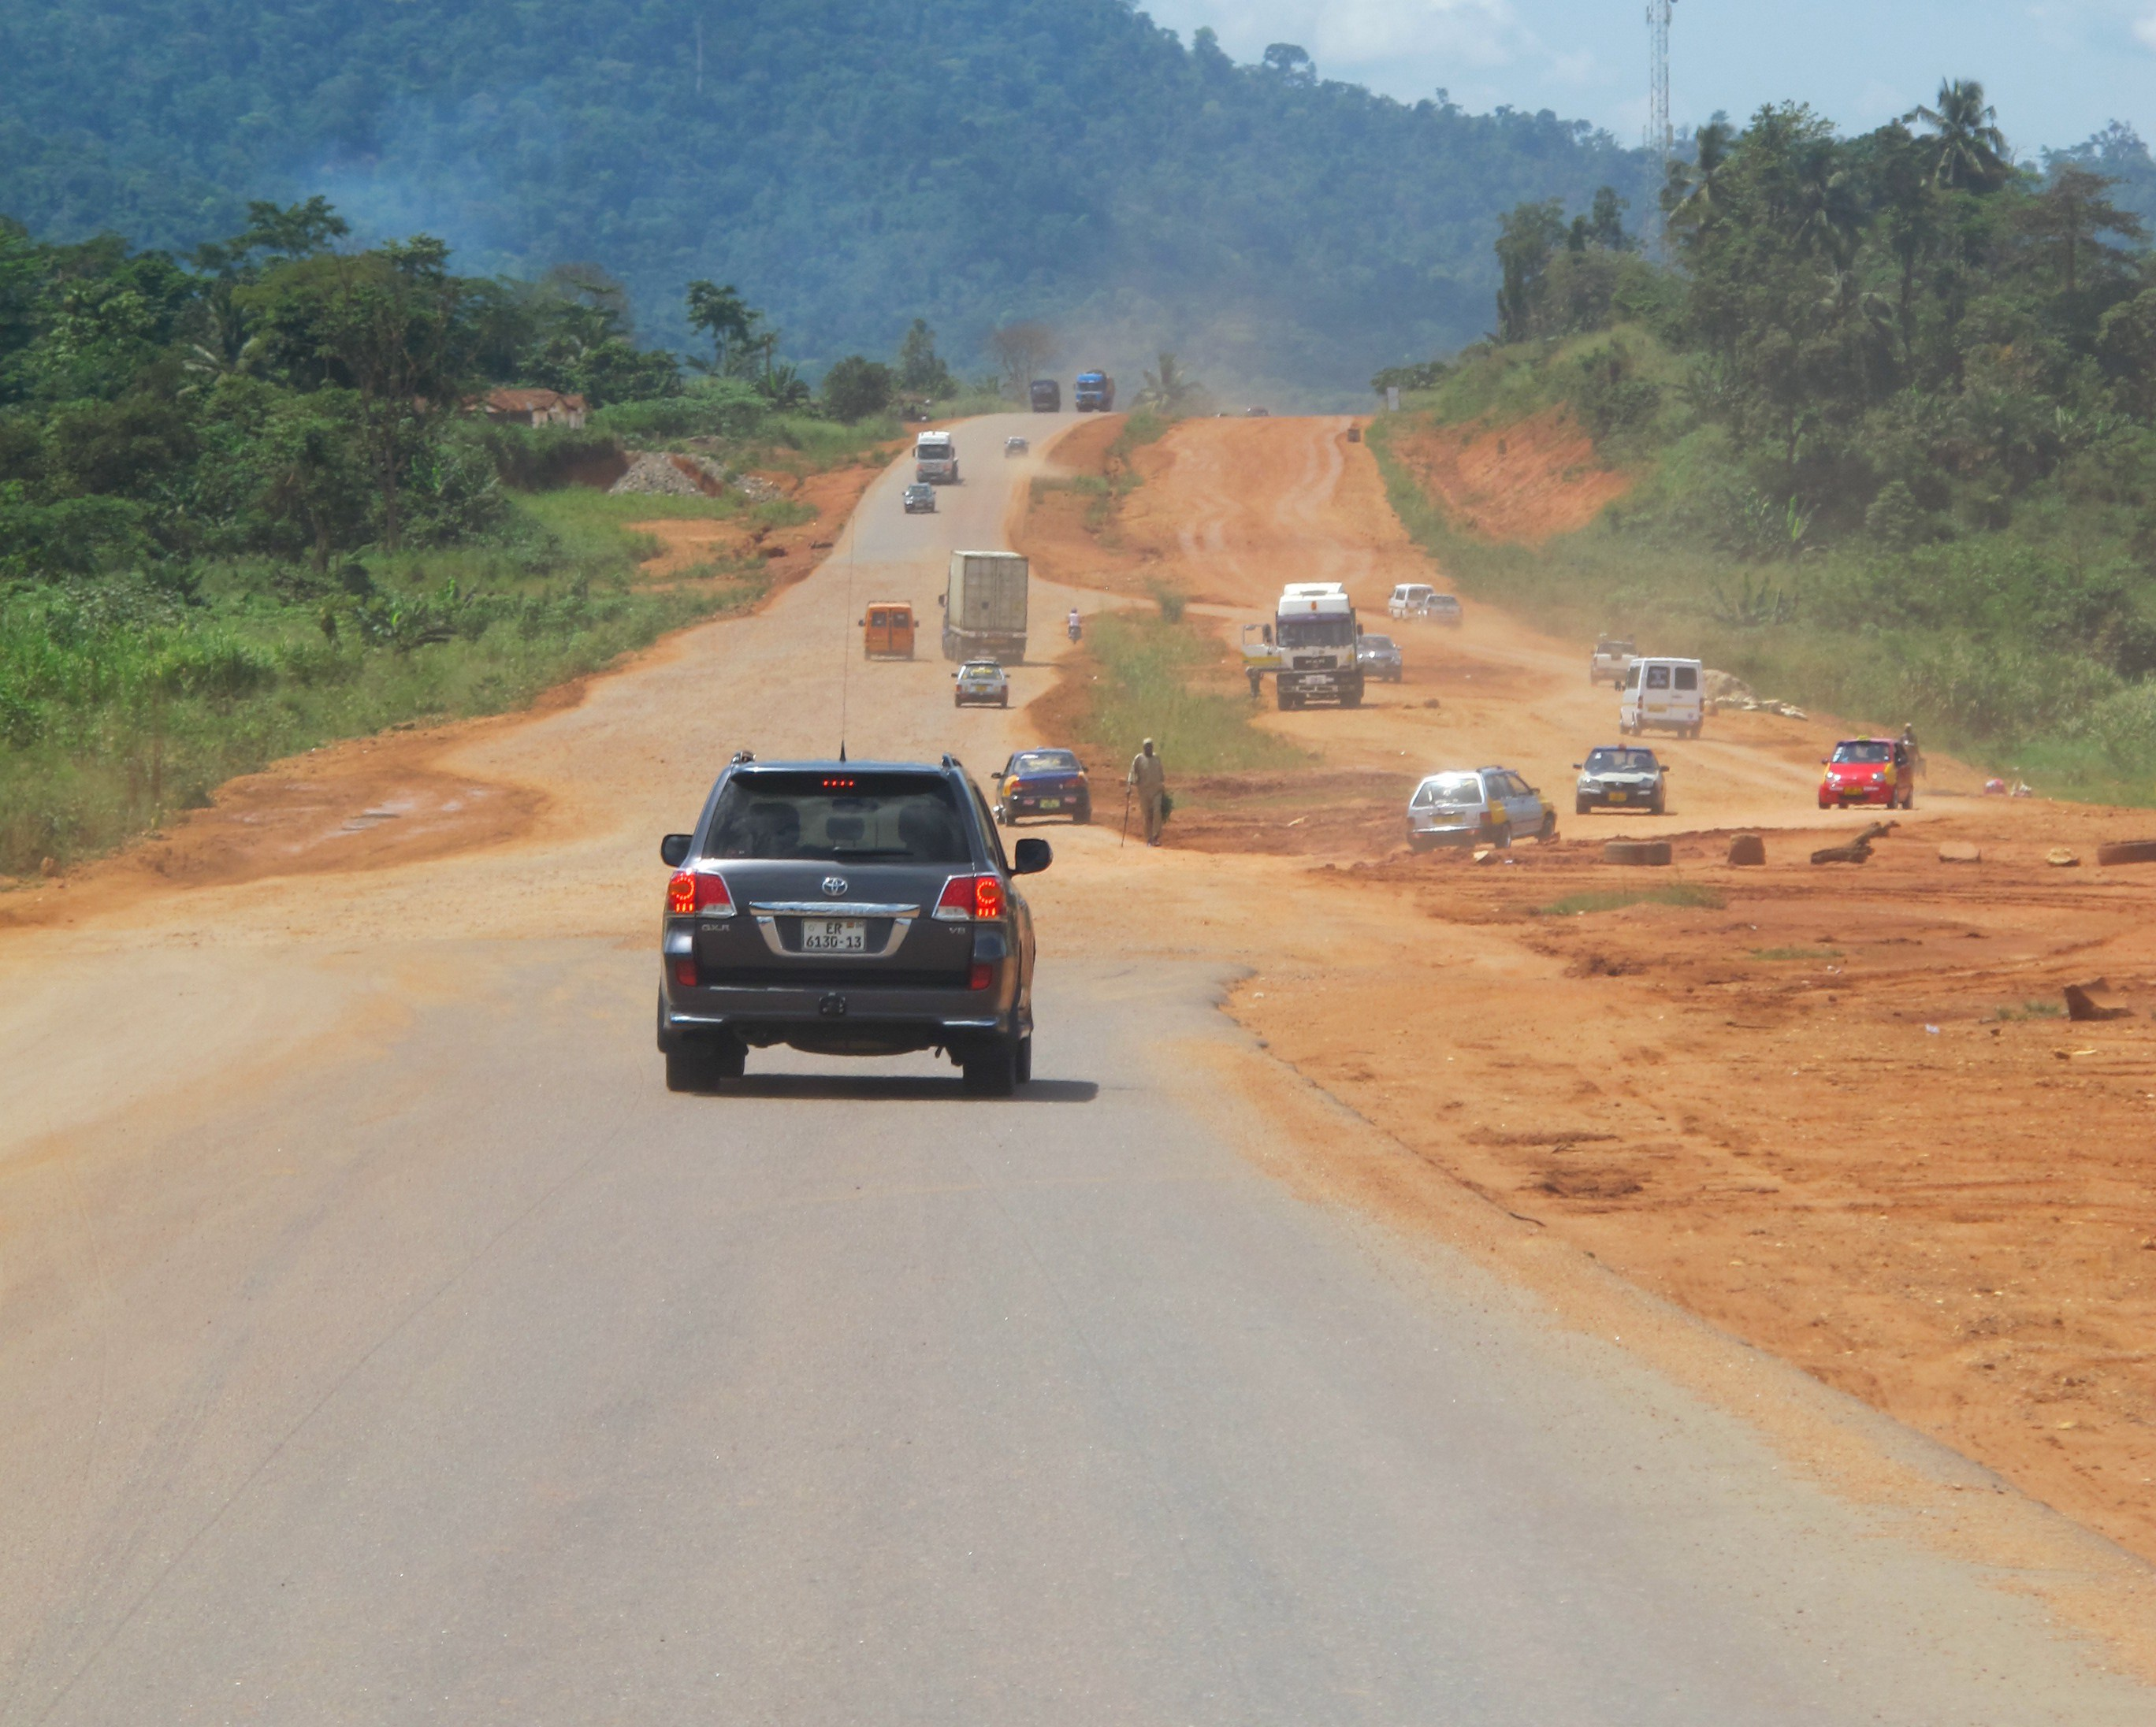 On the Road to Kumasi photographed by Paul Boakye.